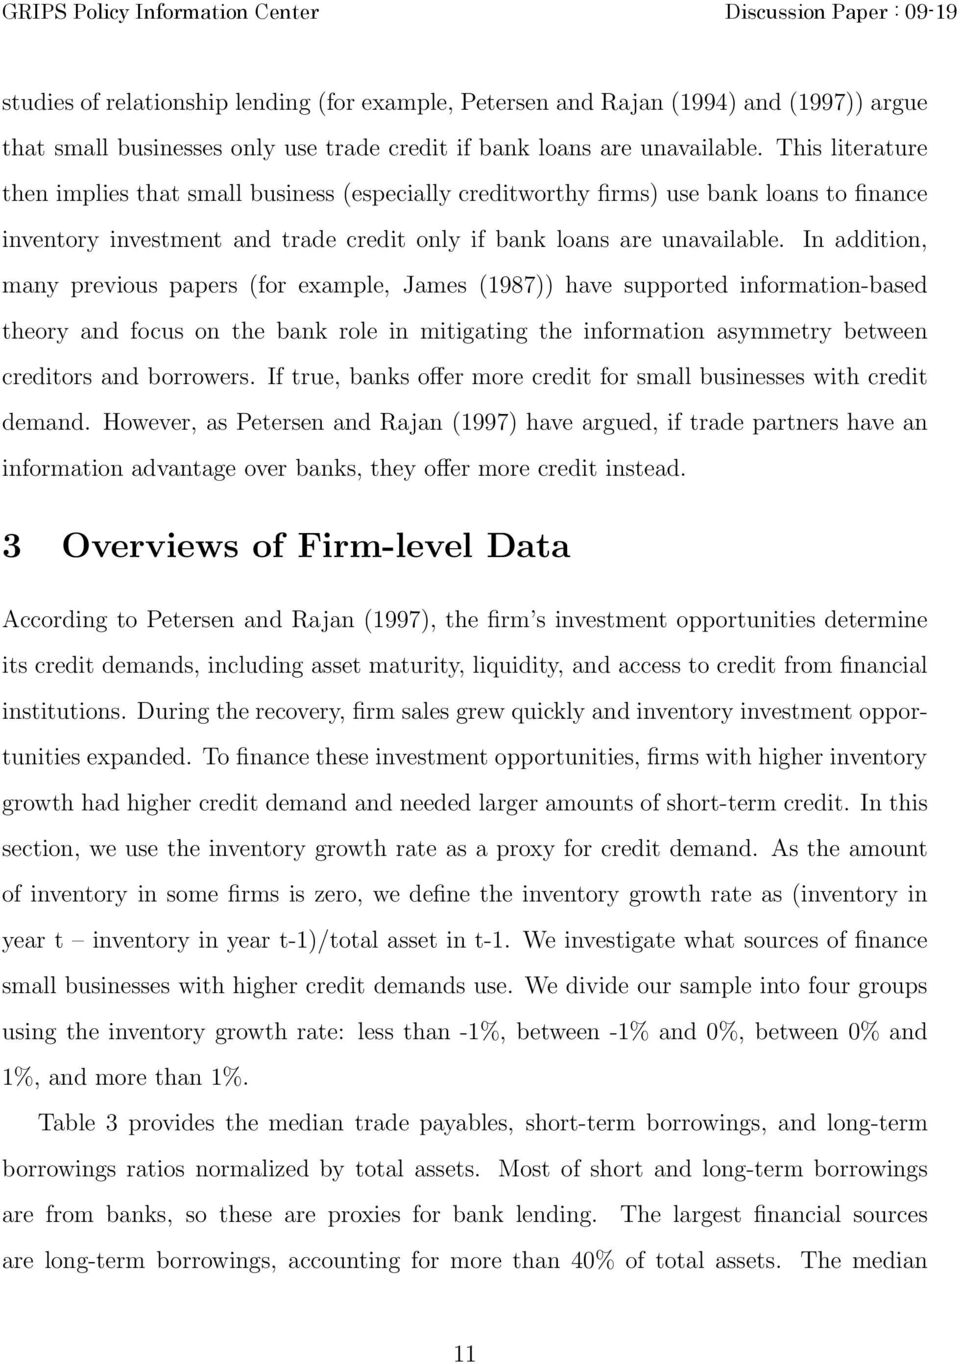 In addition, many previous papers (for example, James (1987)) have supported information-based theory and focus on the bank role in mitigating the information asymmetry between creditors and